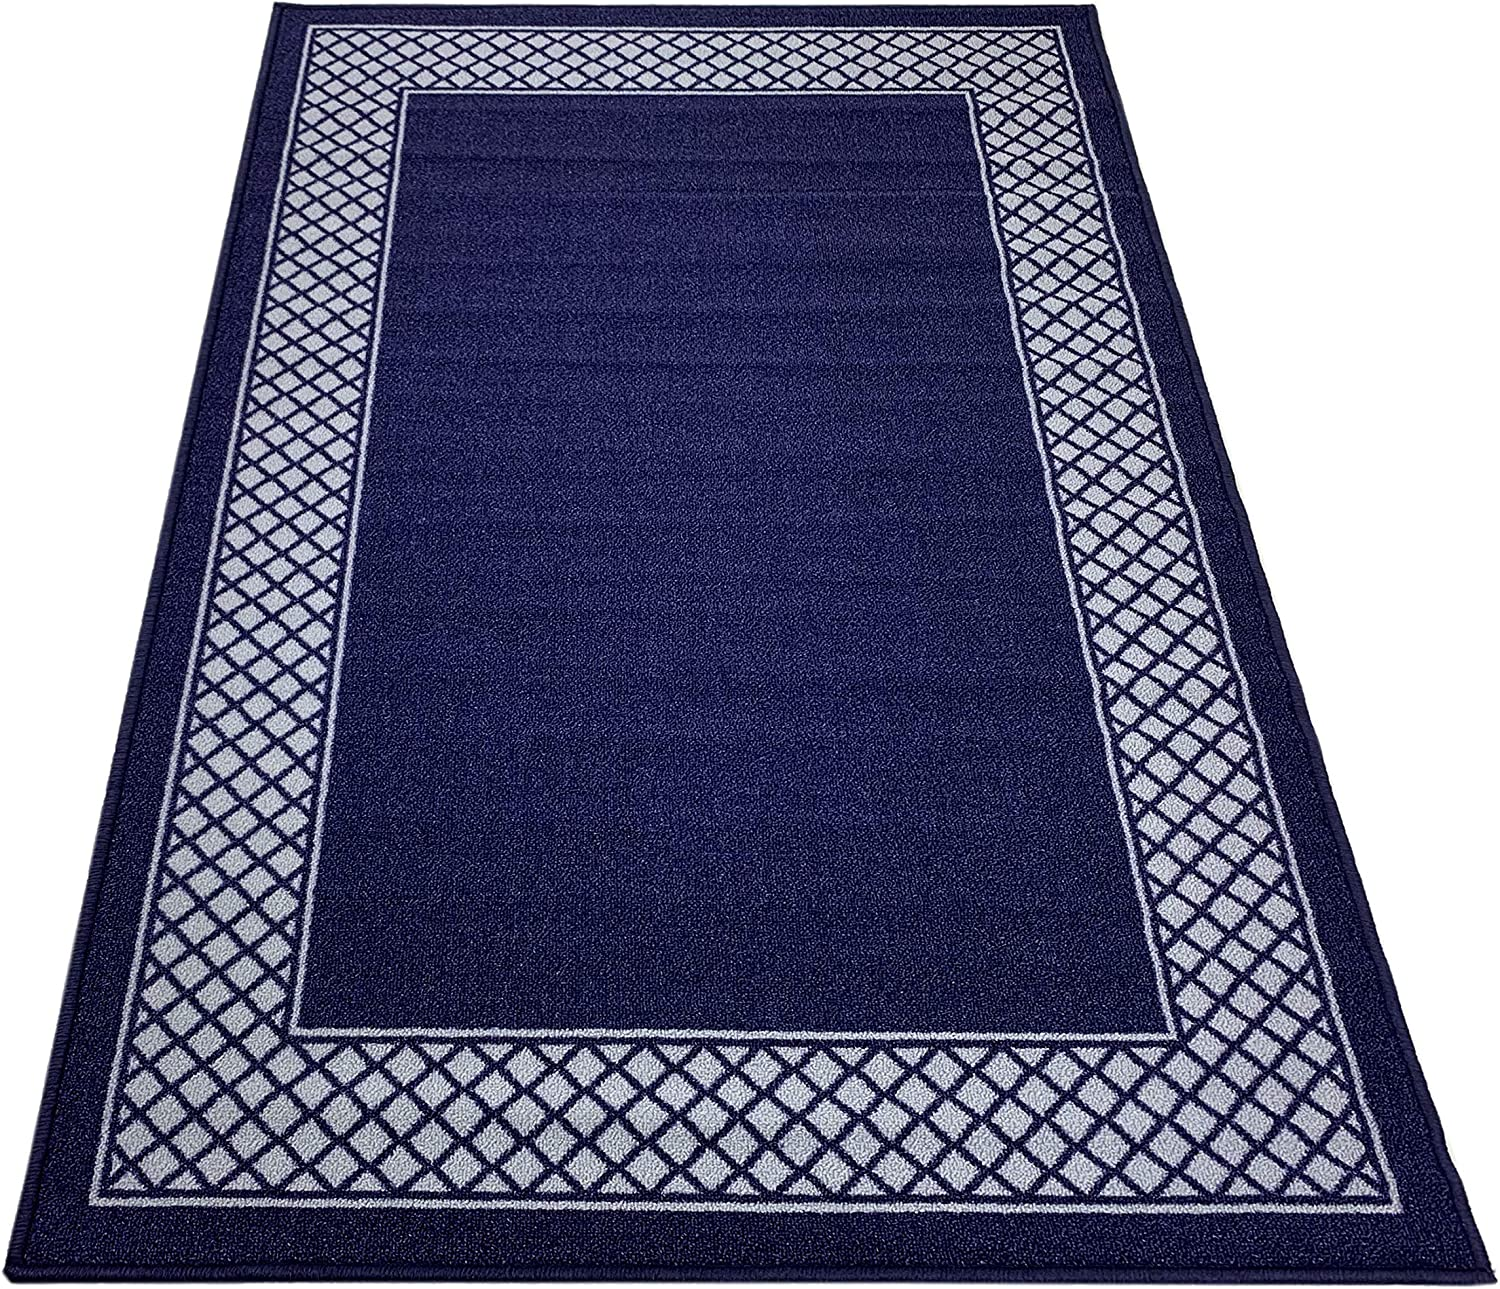 Pinoletti Border Design Printed Slip Resistant Rubber Back Latex Runner Rug and Area Rugs (Royal Navy Blue Navy Blue, 3'3